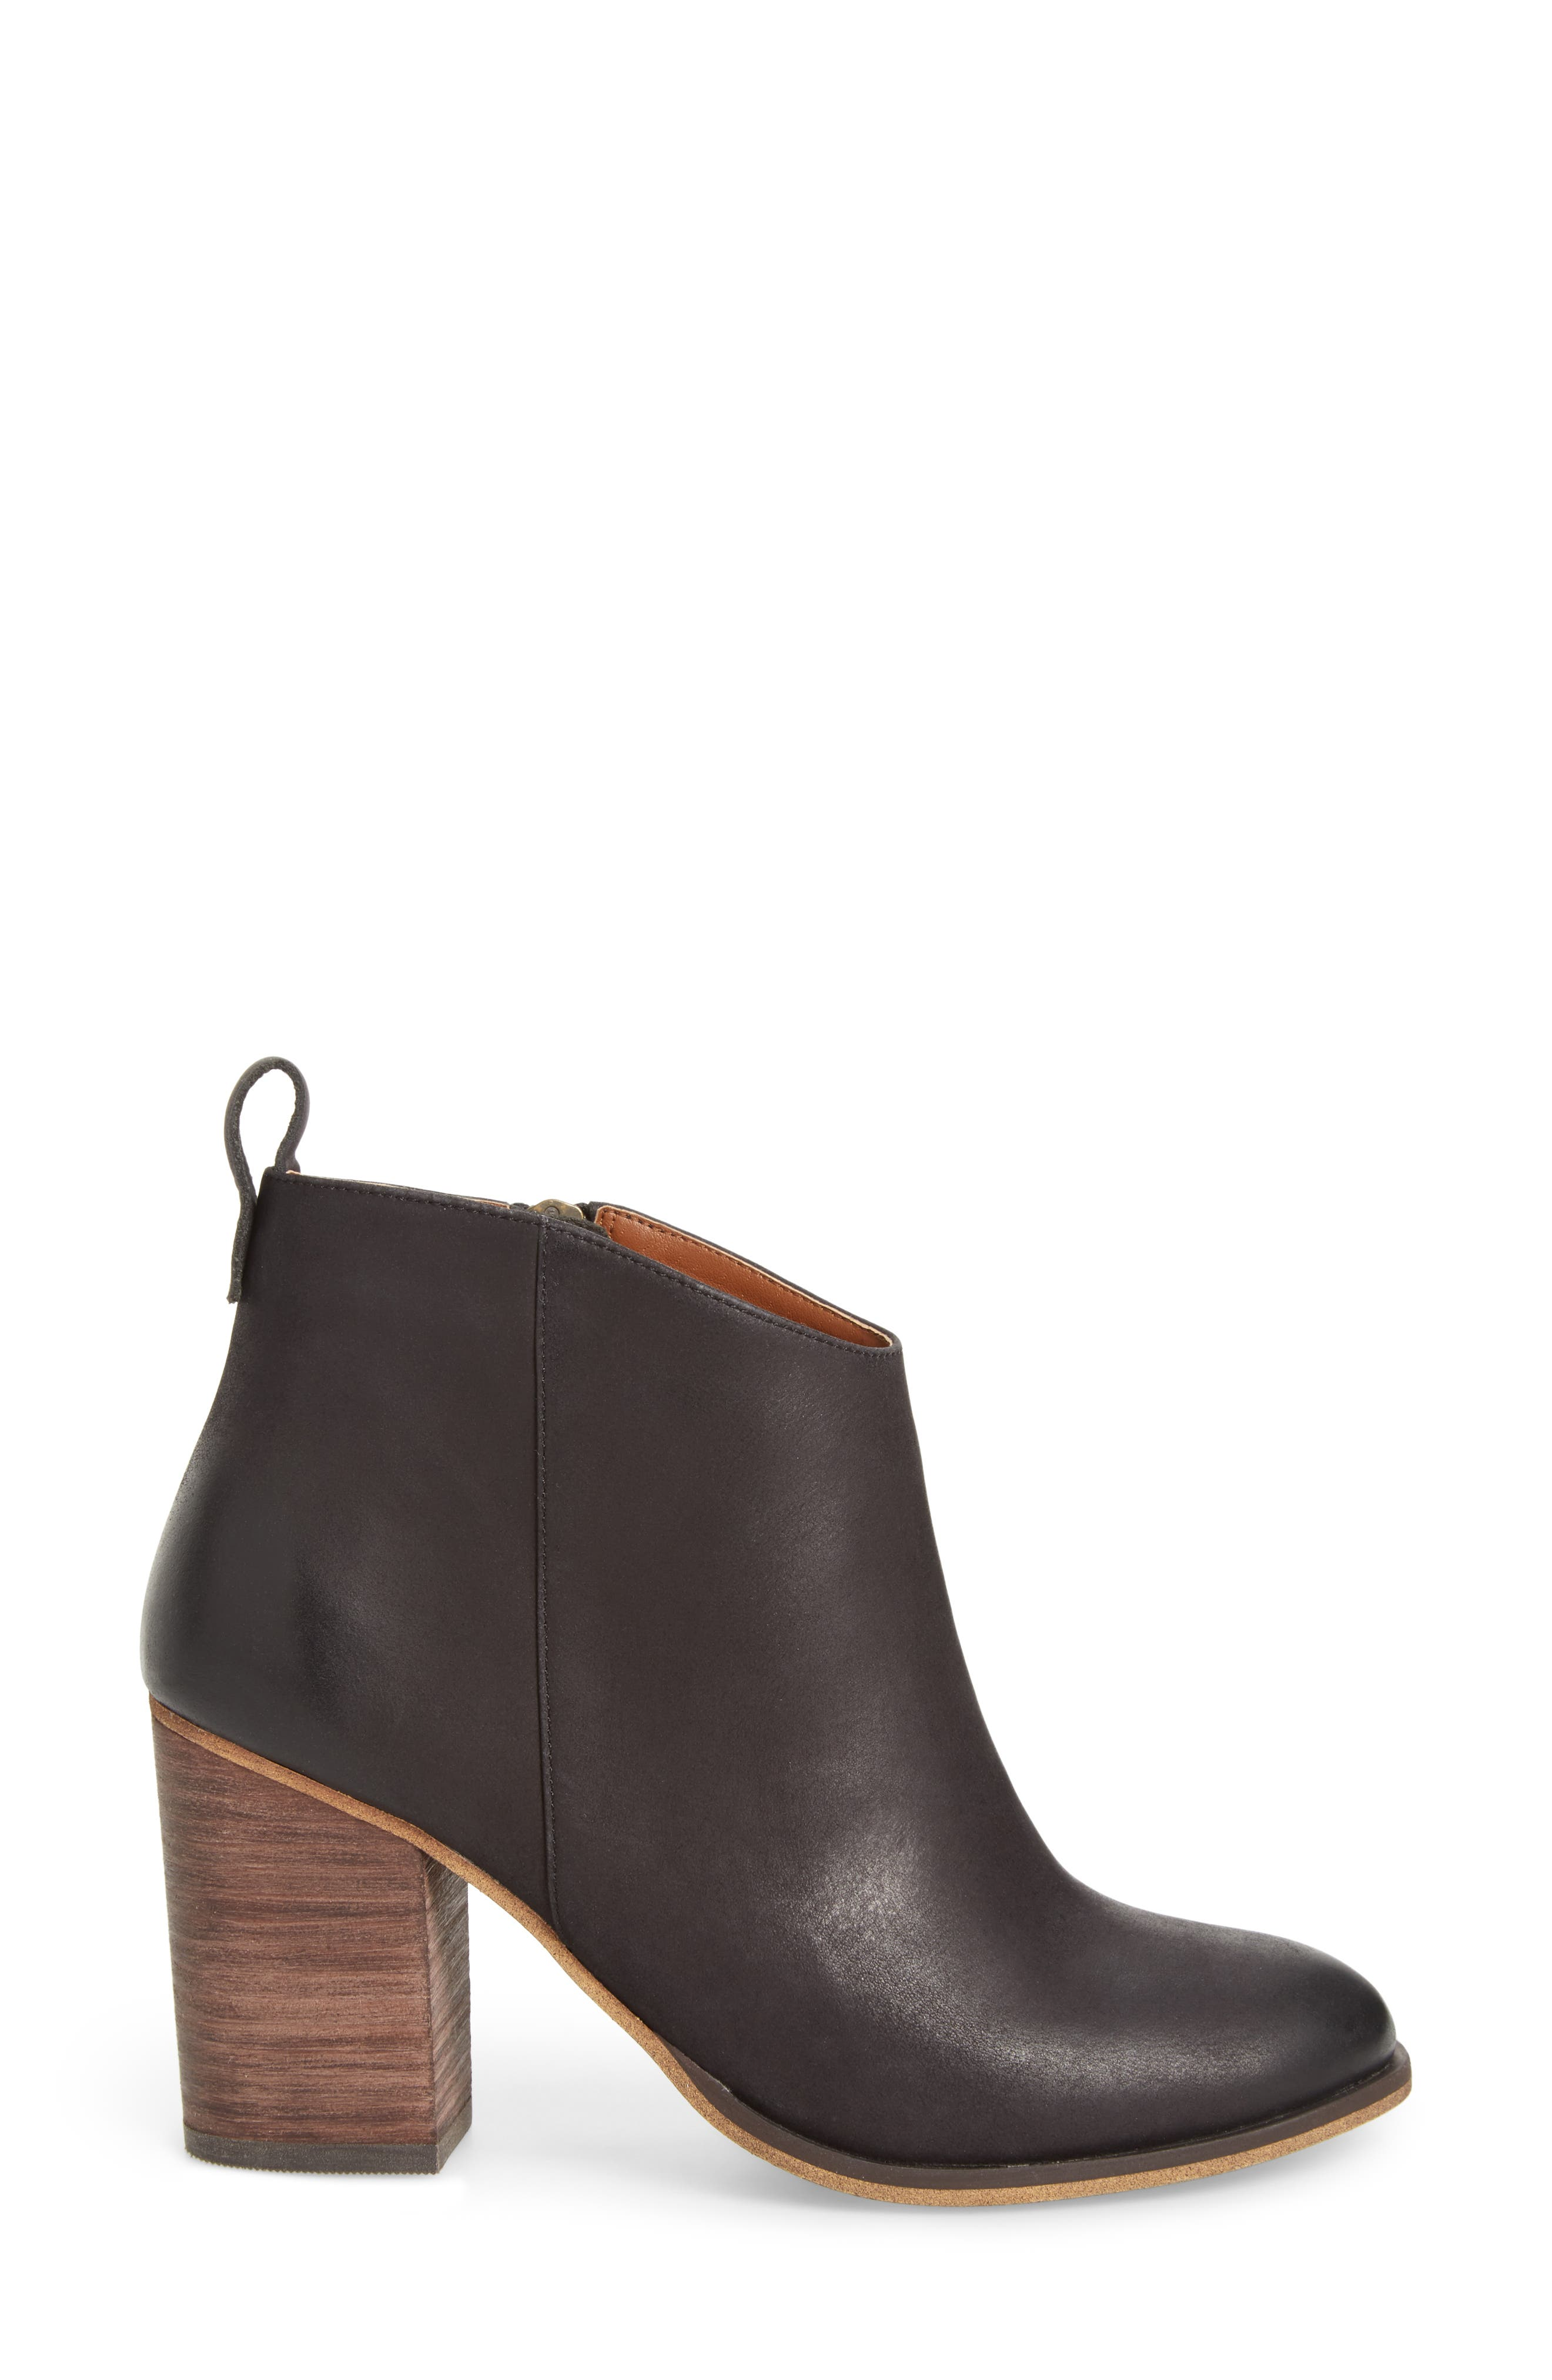 Lance Block Heel Bootie,                             Alternate thumbnail 3, color,                             Black Burnished Leather